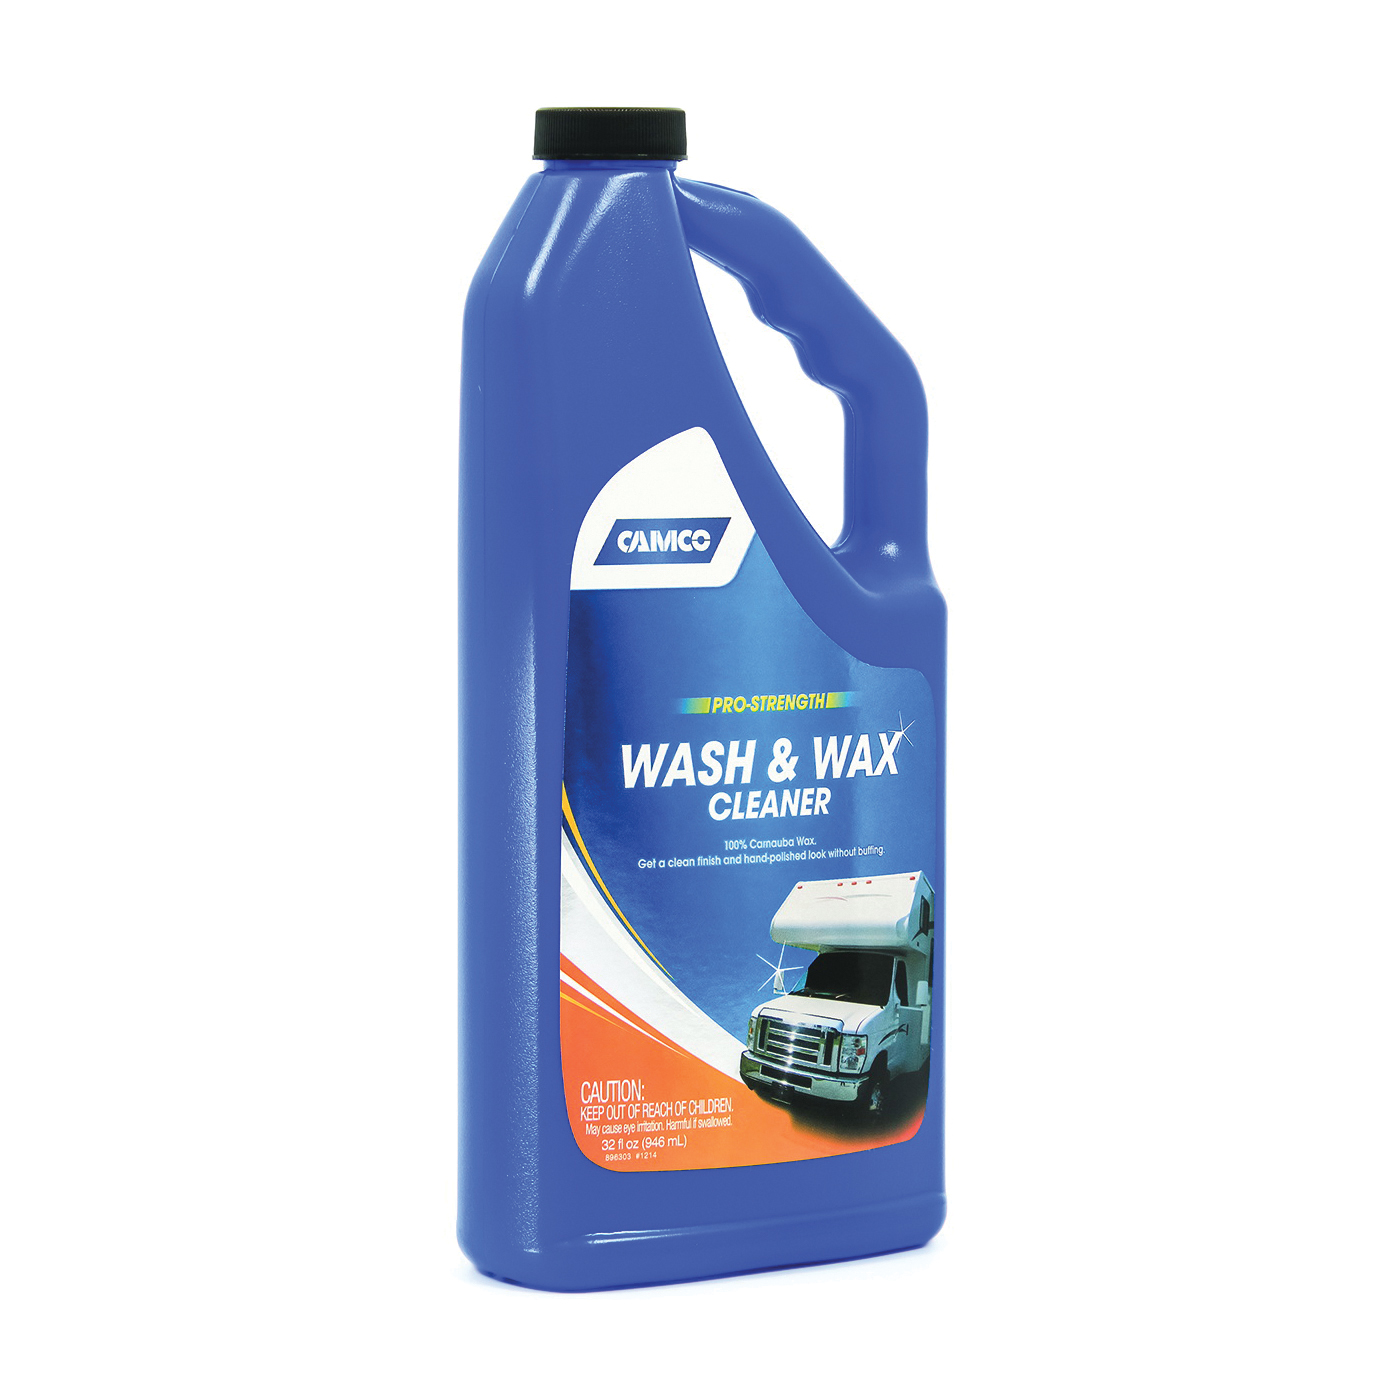 Picture of CAMCO 40493 Wash and Wax Cleaner, 32 oz Package, Bottle, Liquid, Fresh Fragrance